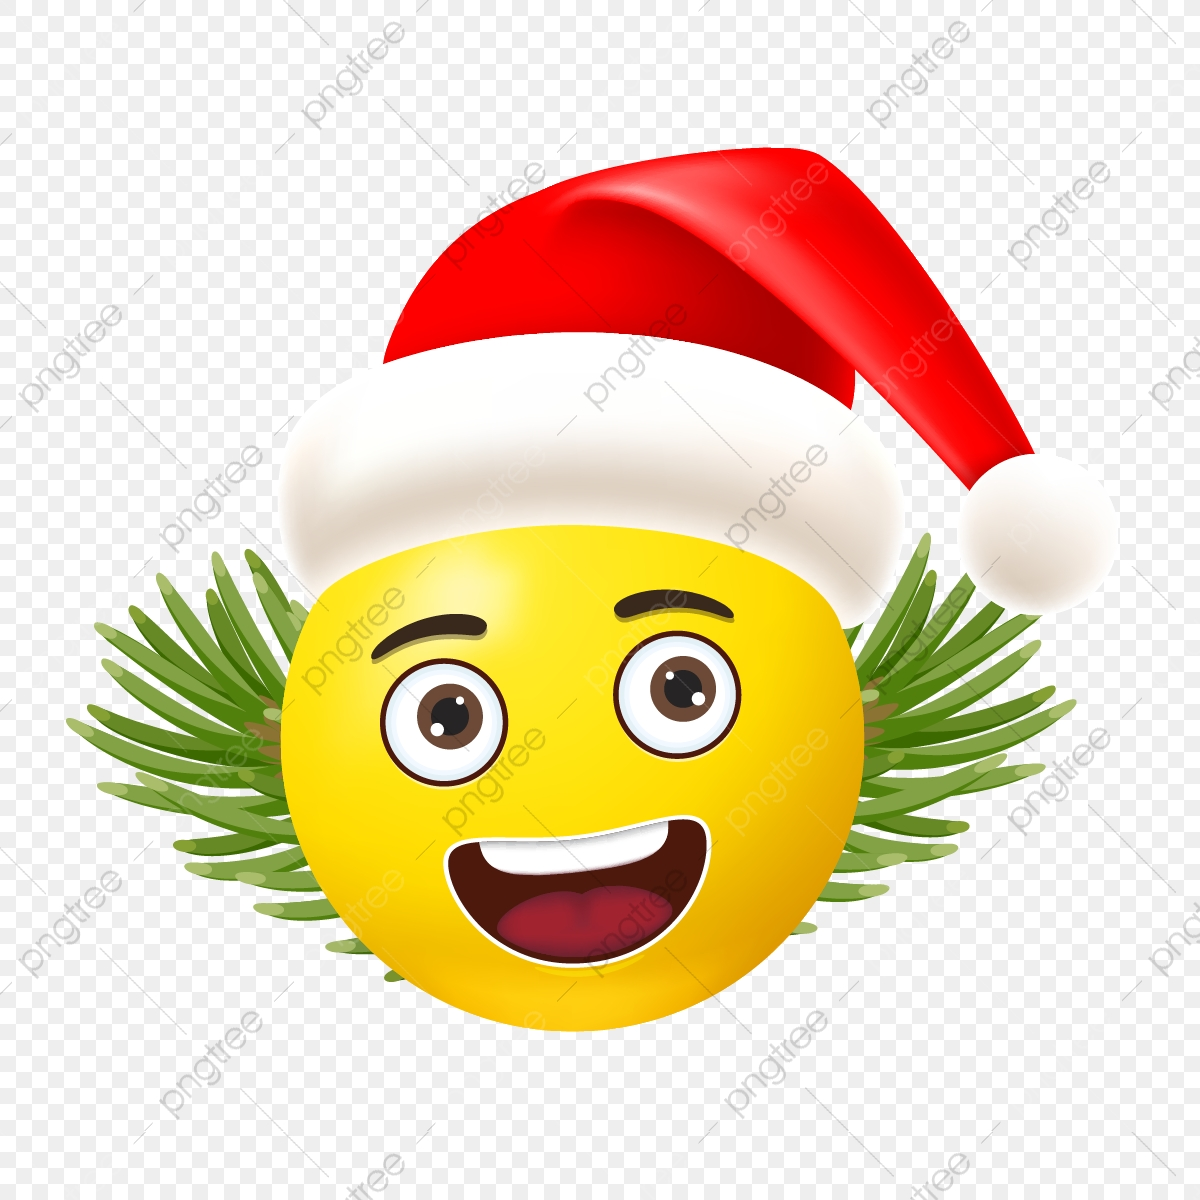 Christmas Emoji.Happy Christmas Emoji With Tree And Hat Vector Christmas